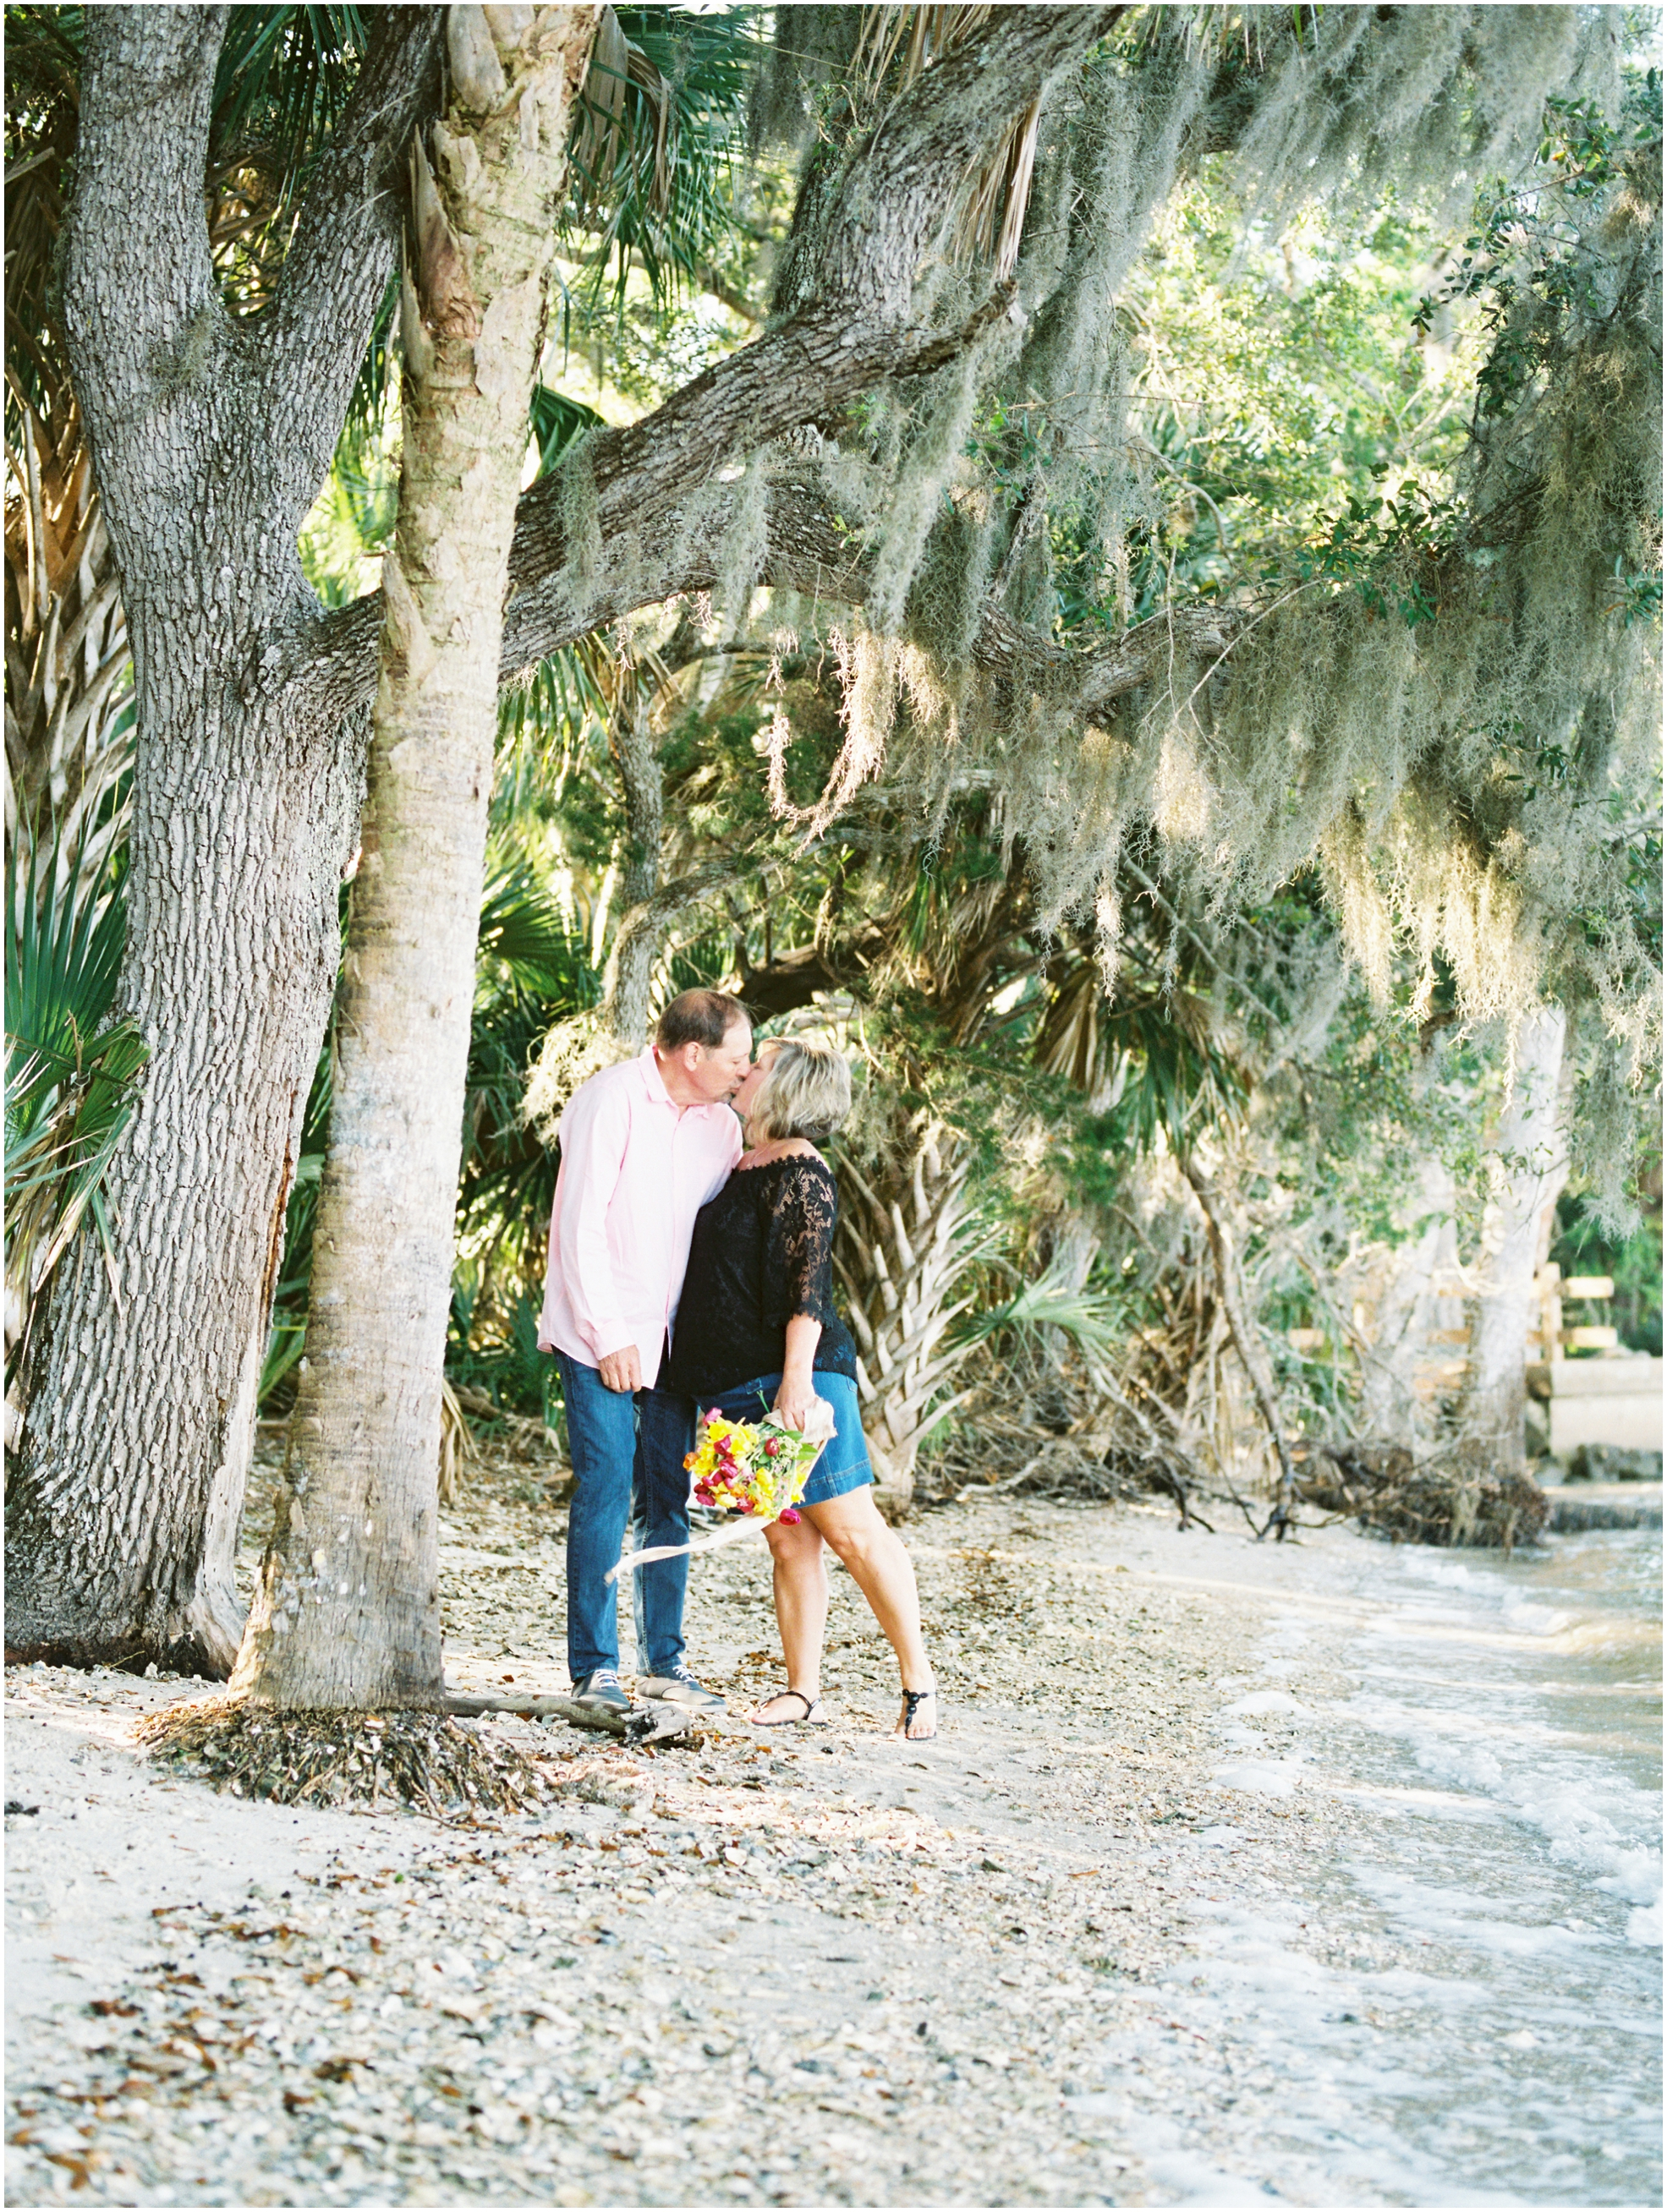 Lisa Silva Photography- Jacksonville, St. Augustine, Amelia Island, Ponte Vedra Beach, North East Florida Fine Art Film Photographer- Anniversary Session at Washington Oaks in Palm Coast, Florida_0052.jpg